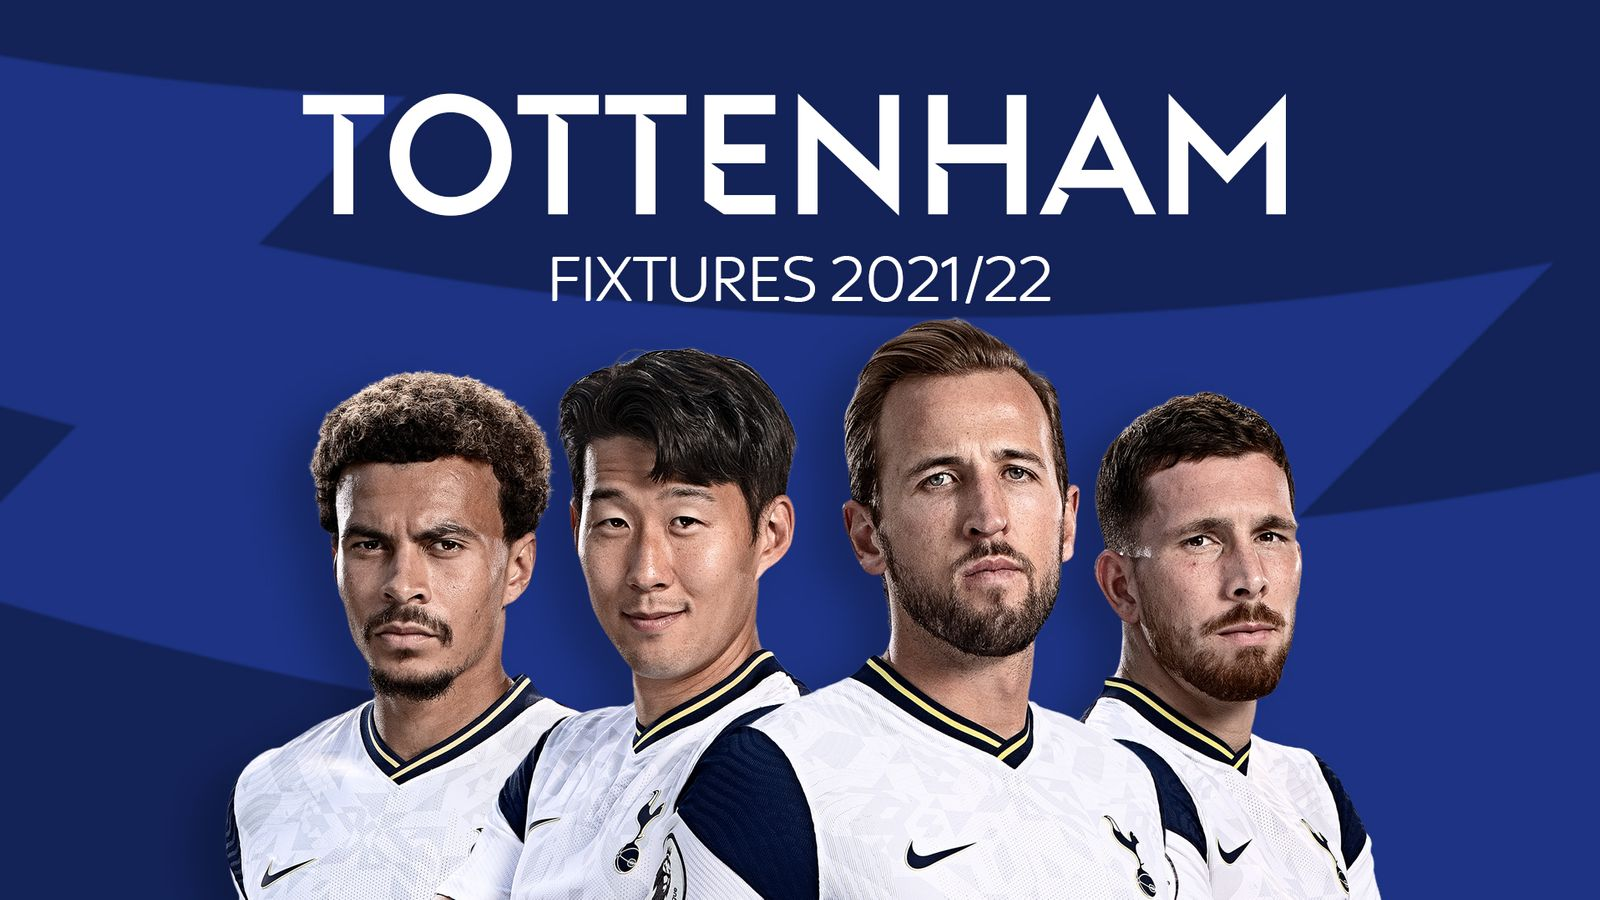 Tottenham Premier League 2021-22: Fixtures and Match Schedules in Full